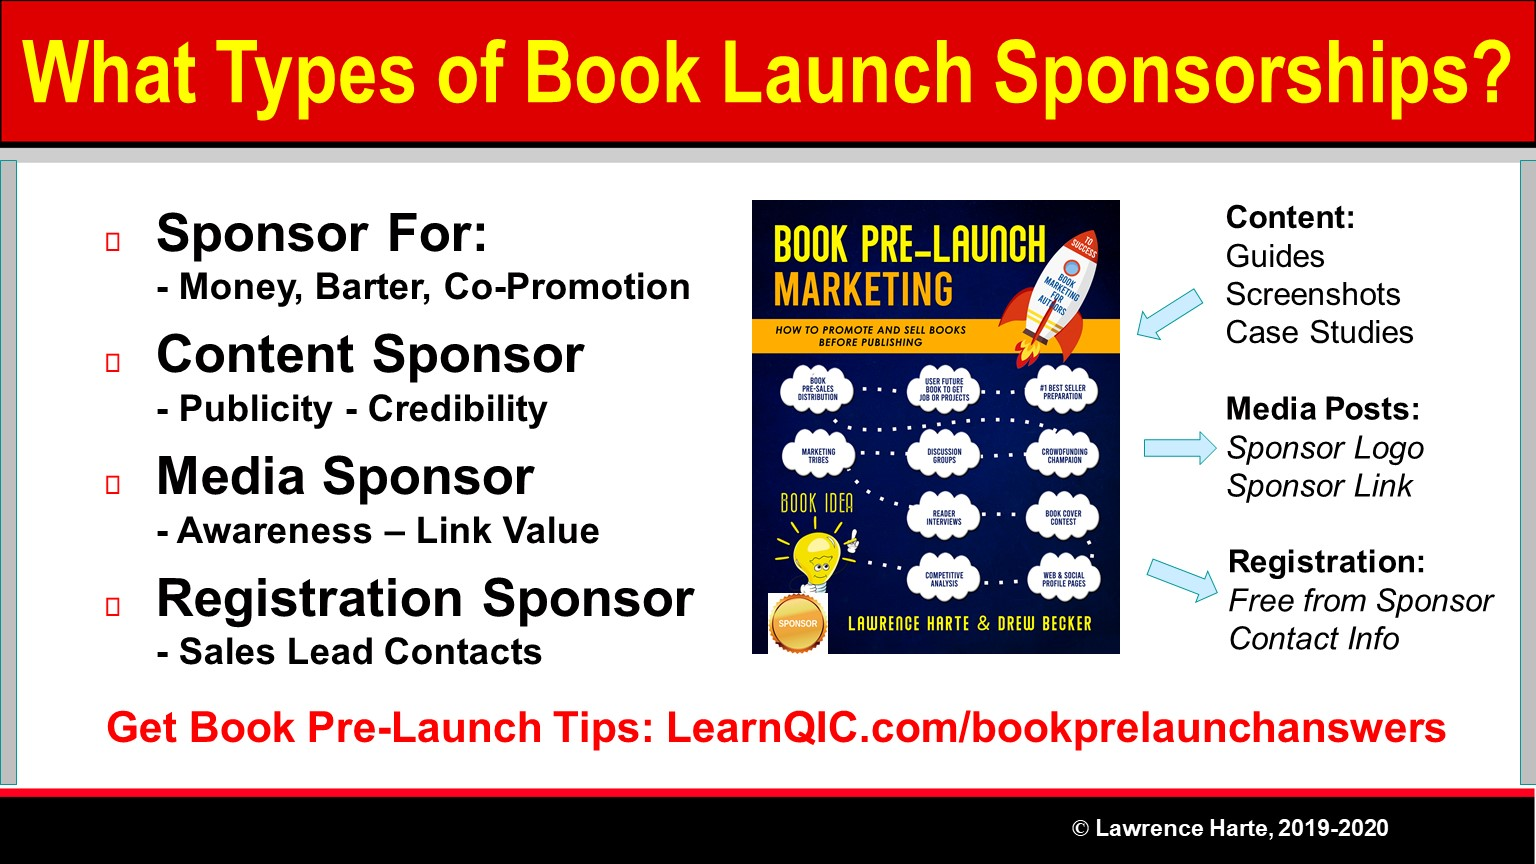 What are the Types of Book Launch Sponsorships?